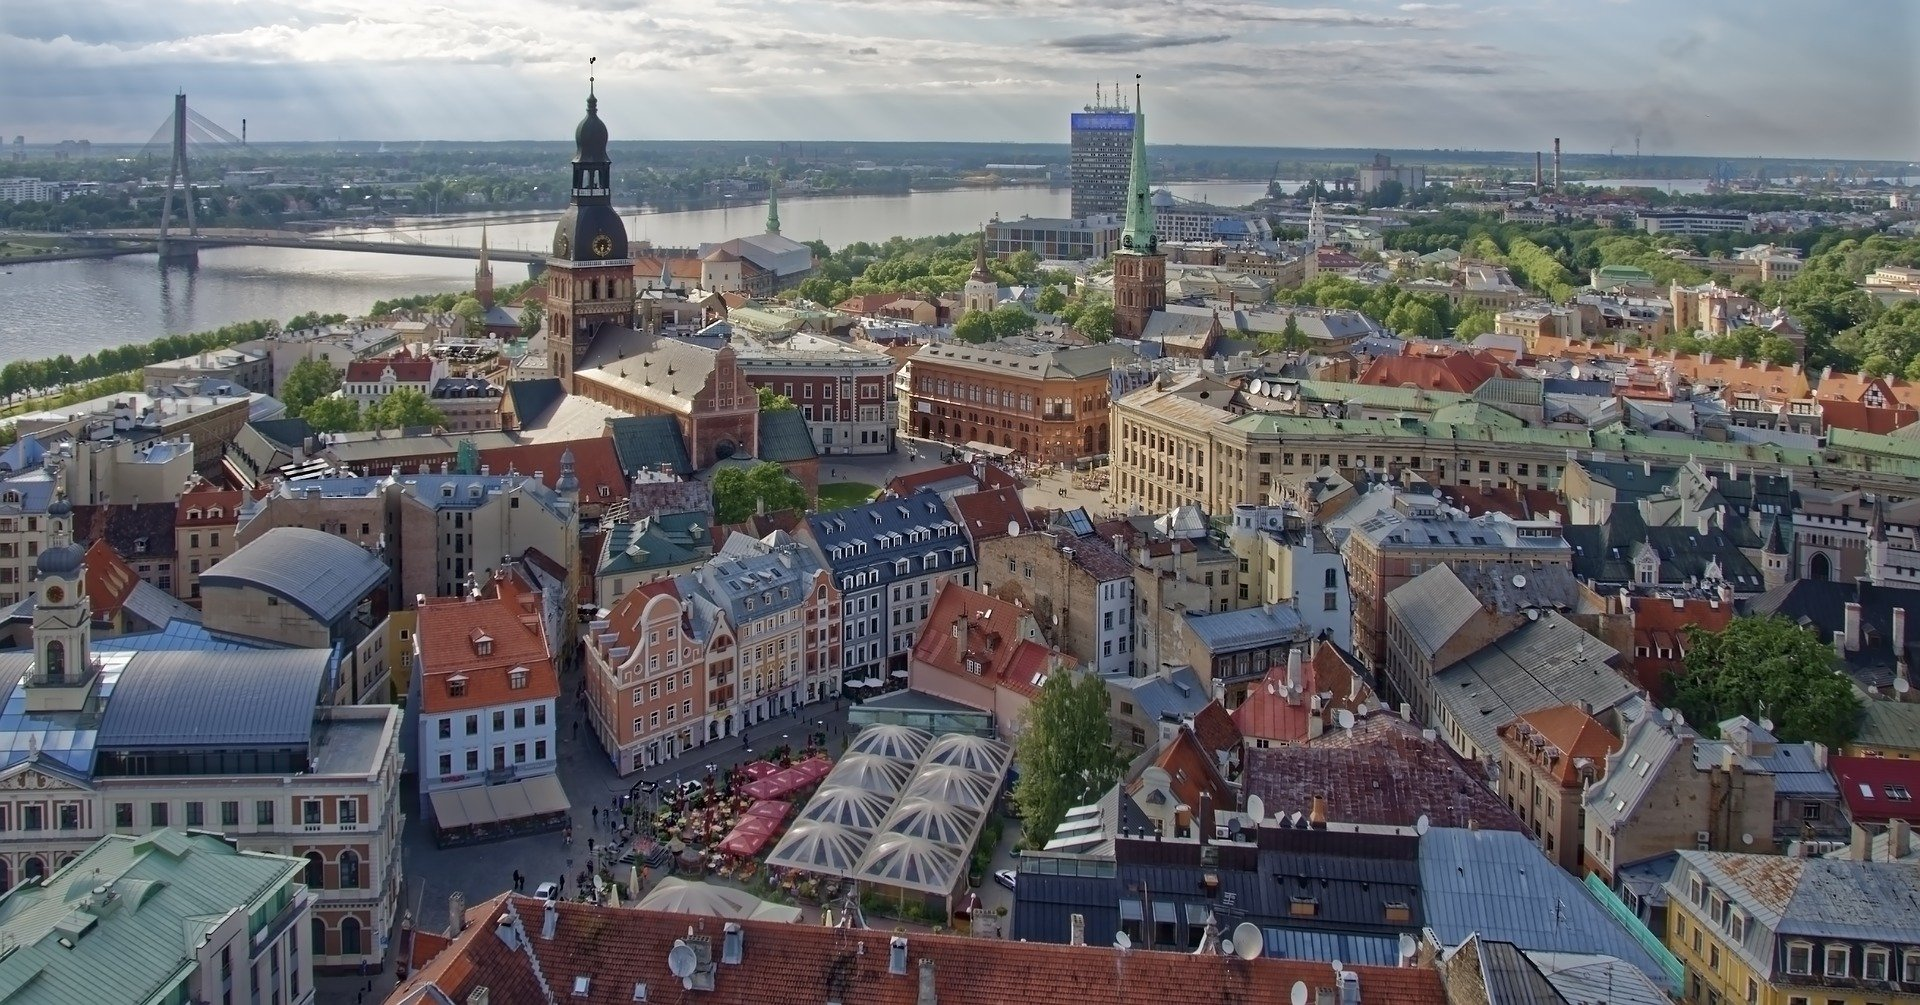 Private detectives and investigators in Latvia